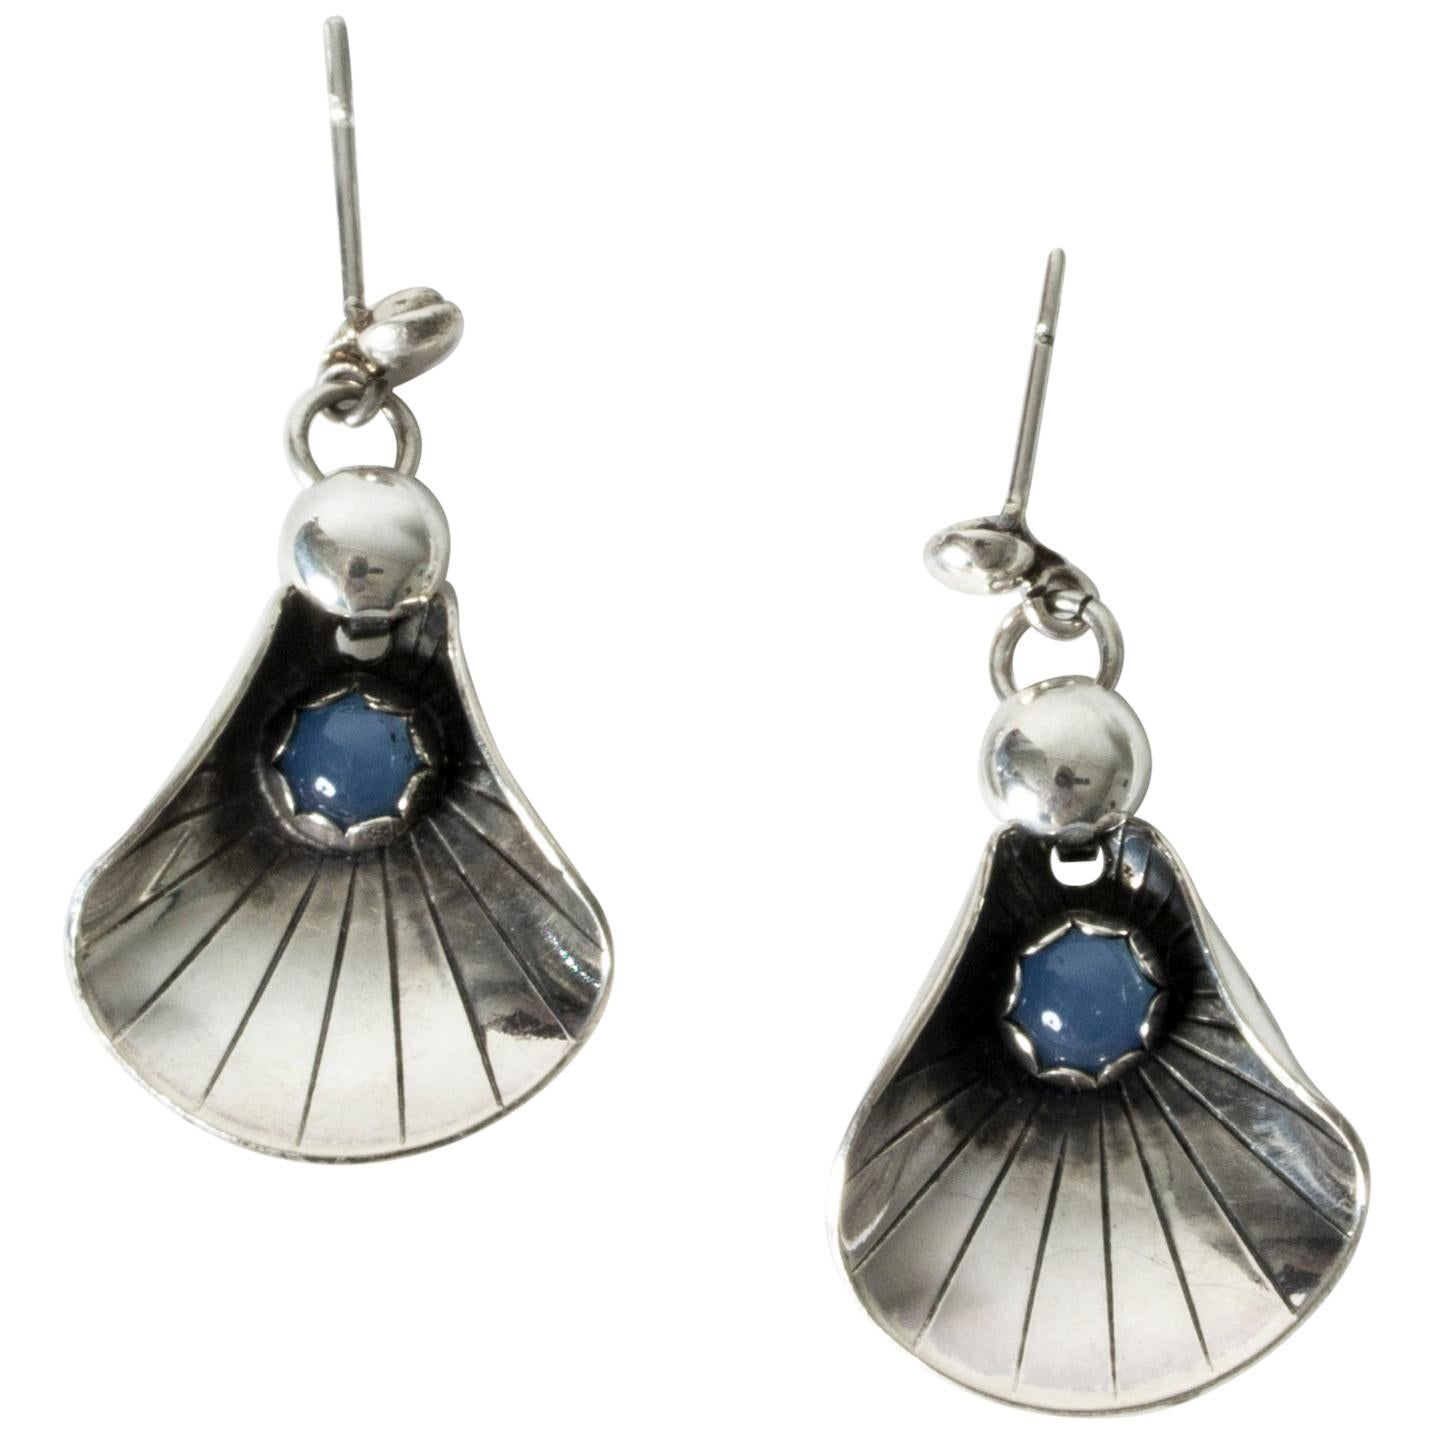 Silver and Chalcedony Earrings from Alton, Sweden, 1960s